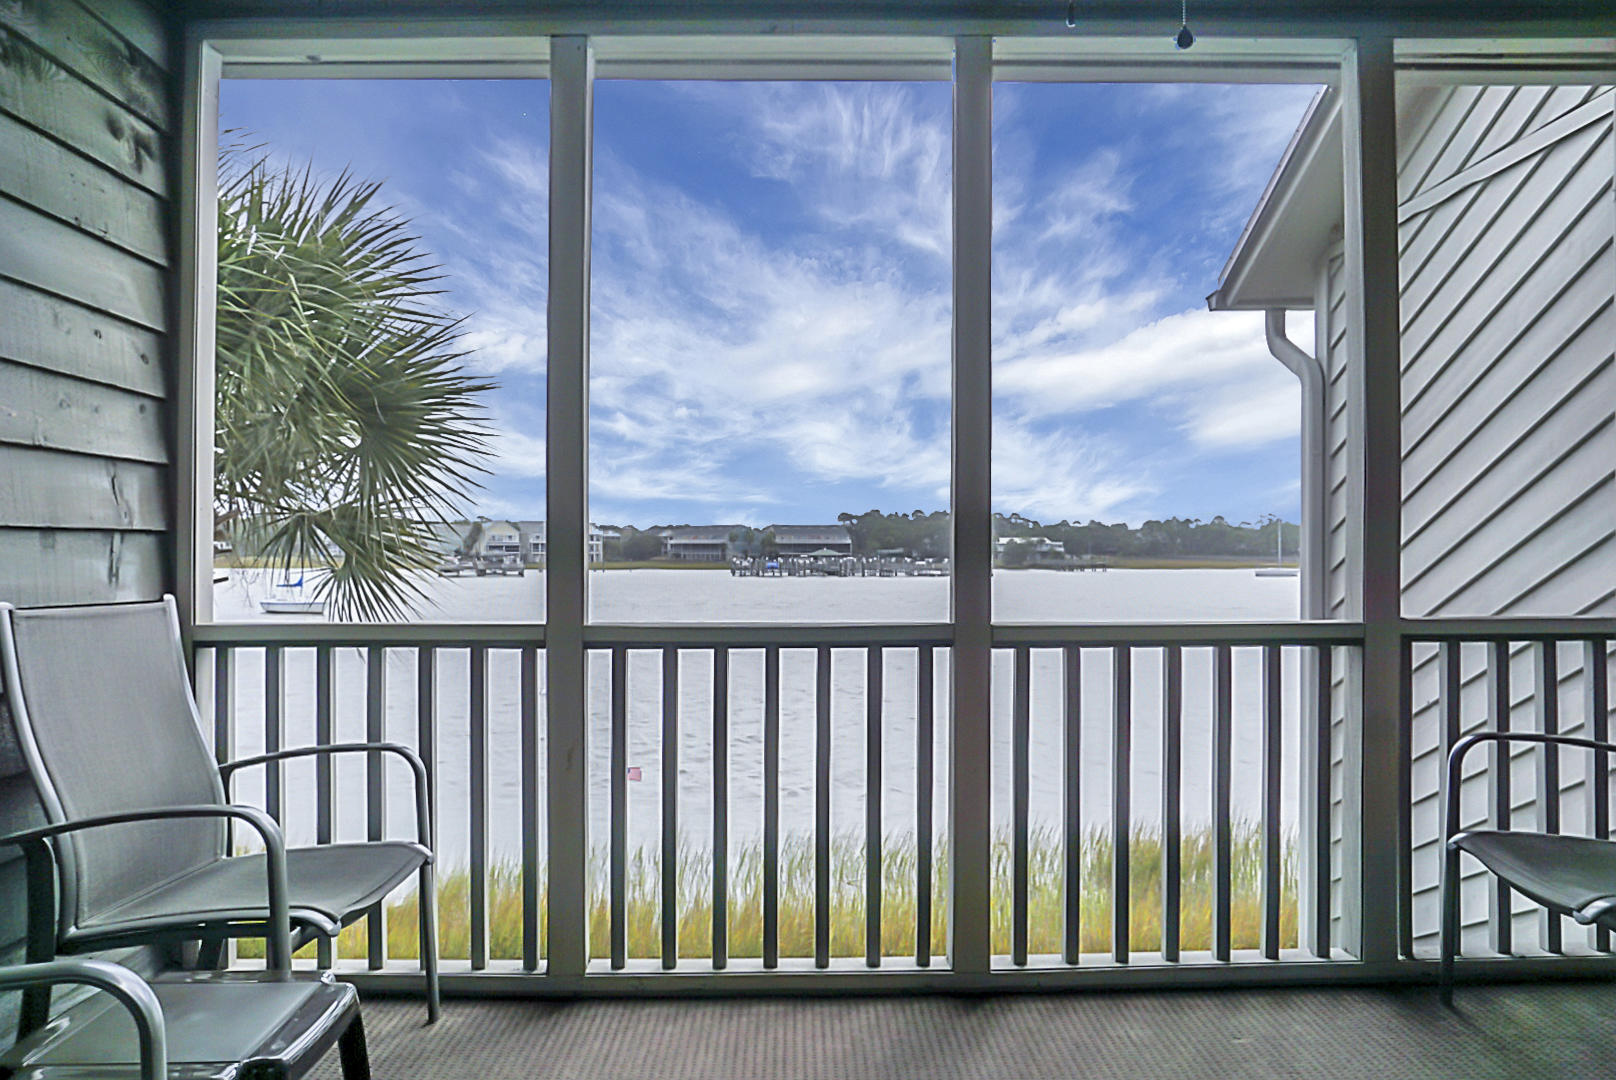 Mariners Cay Homes For Sale - 45 Mariners Cay, Folly Beach, SC - 25